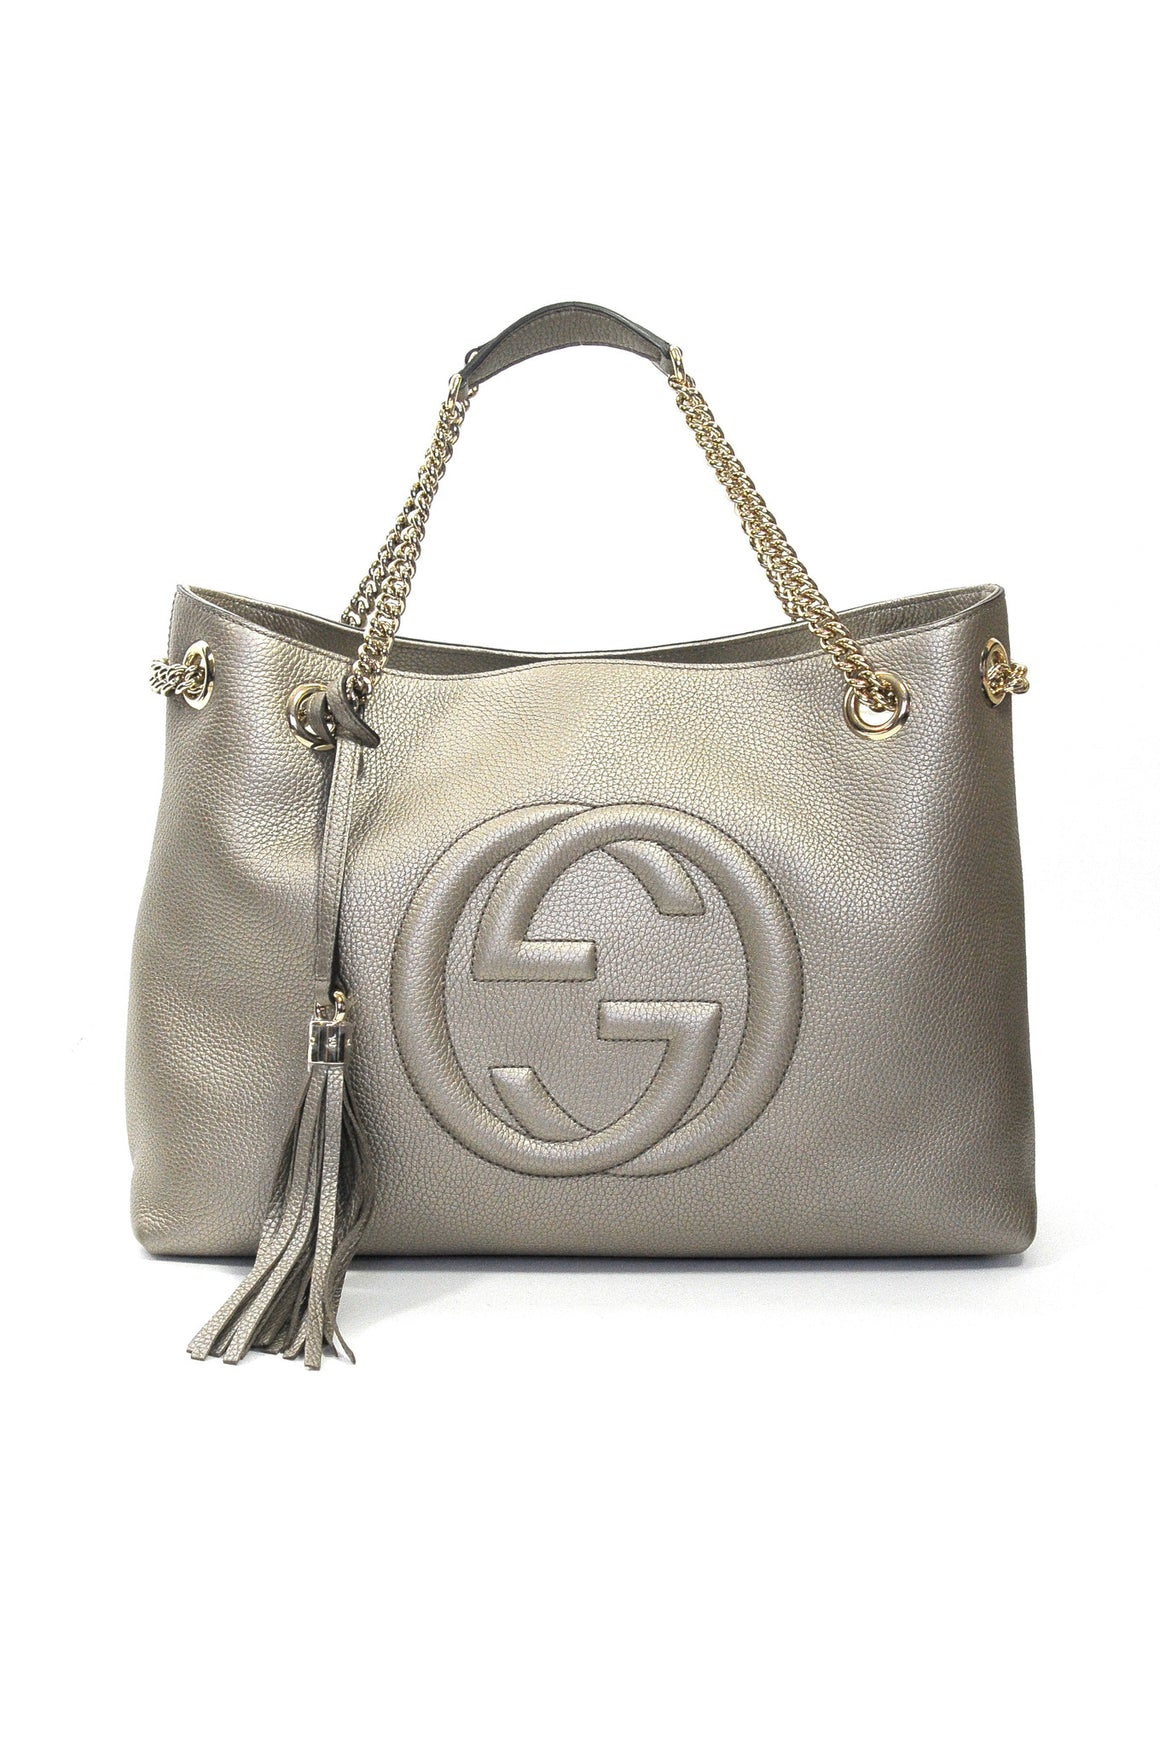 Gucci Soho Metallic Leather Shoulder Bag in Champagne, Women's Handbags, Gucci, Closet Upgrade - Closet-Upgrade